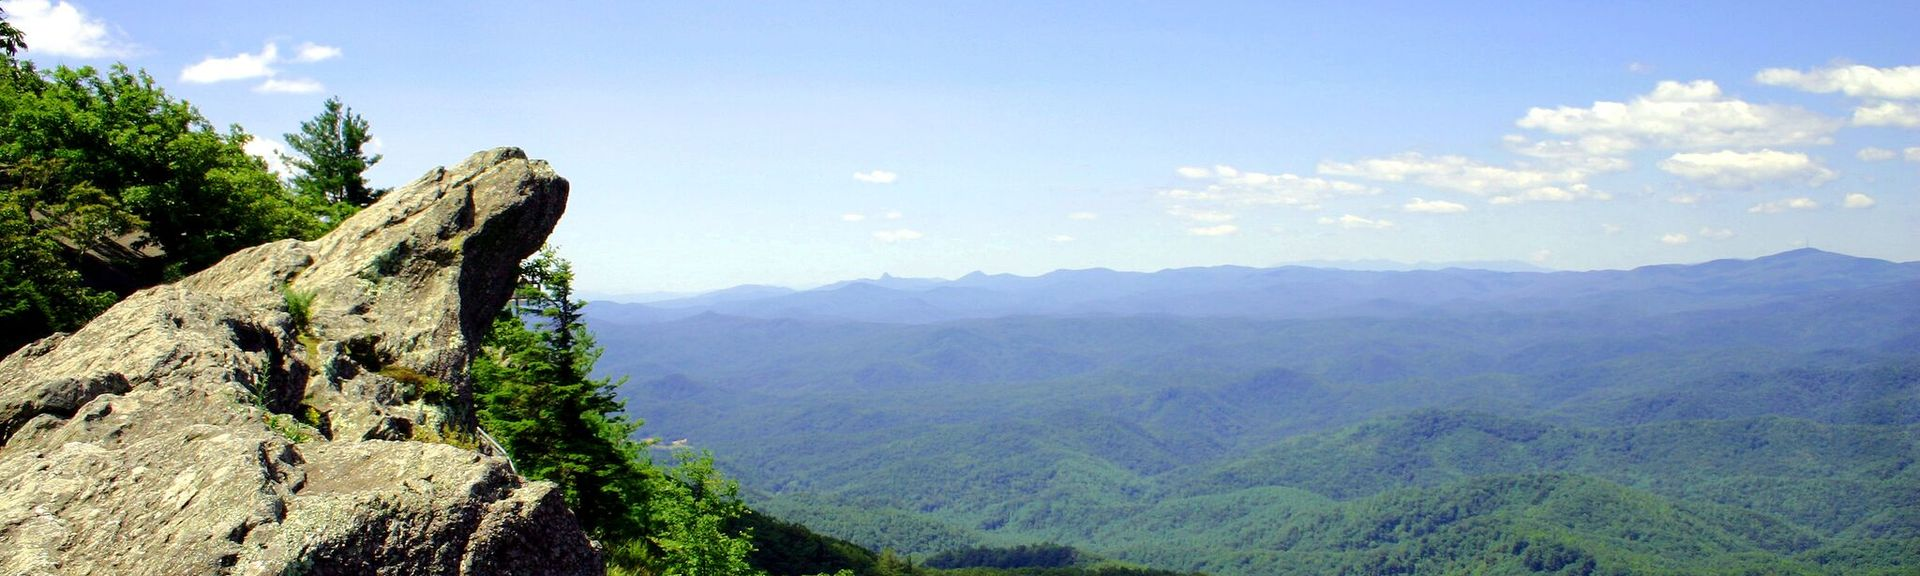 Blowing Rock, Carolina do Norte, Estados Unidos